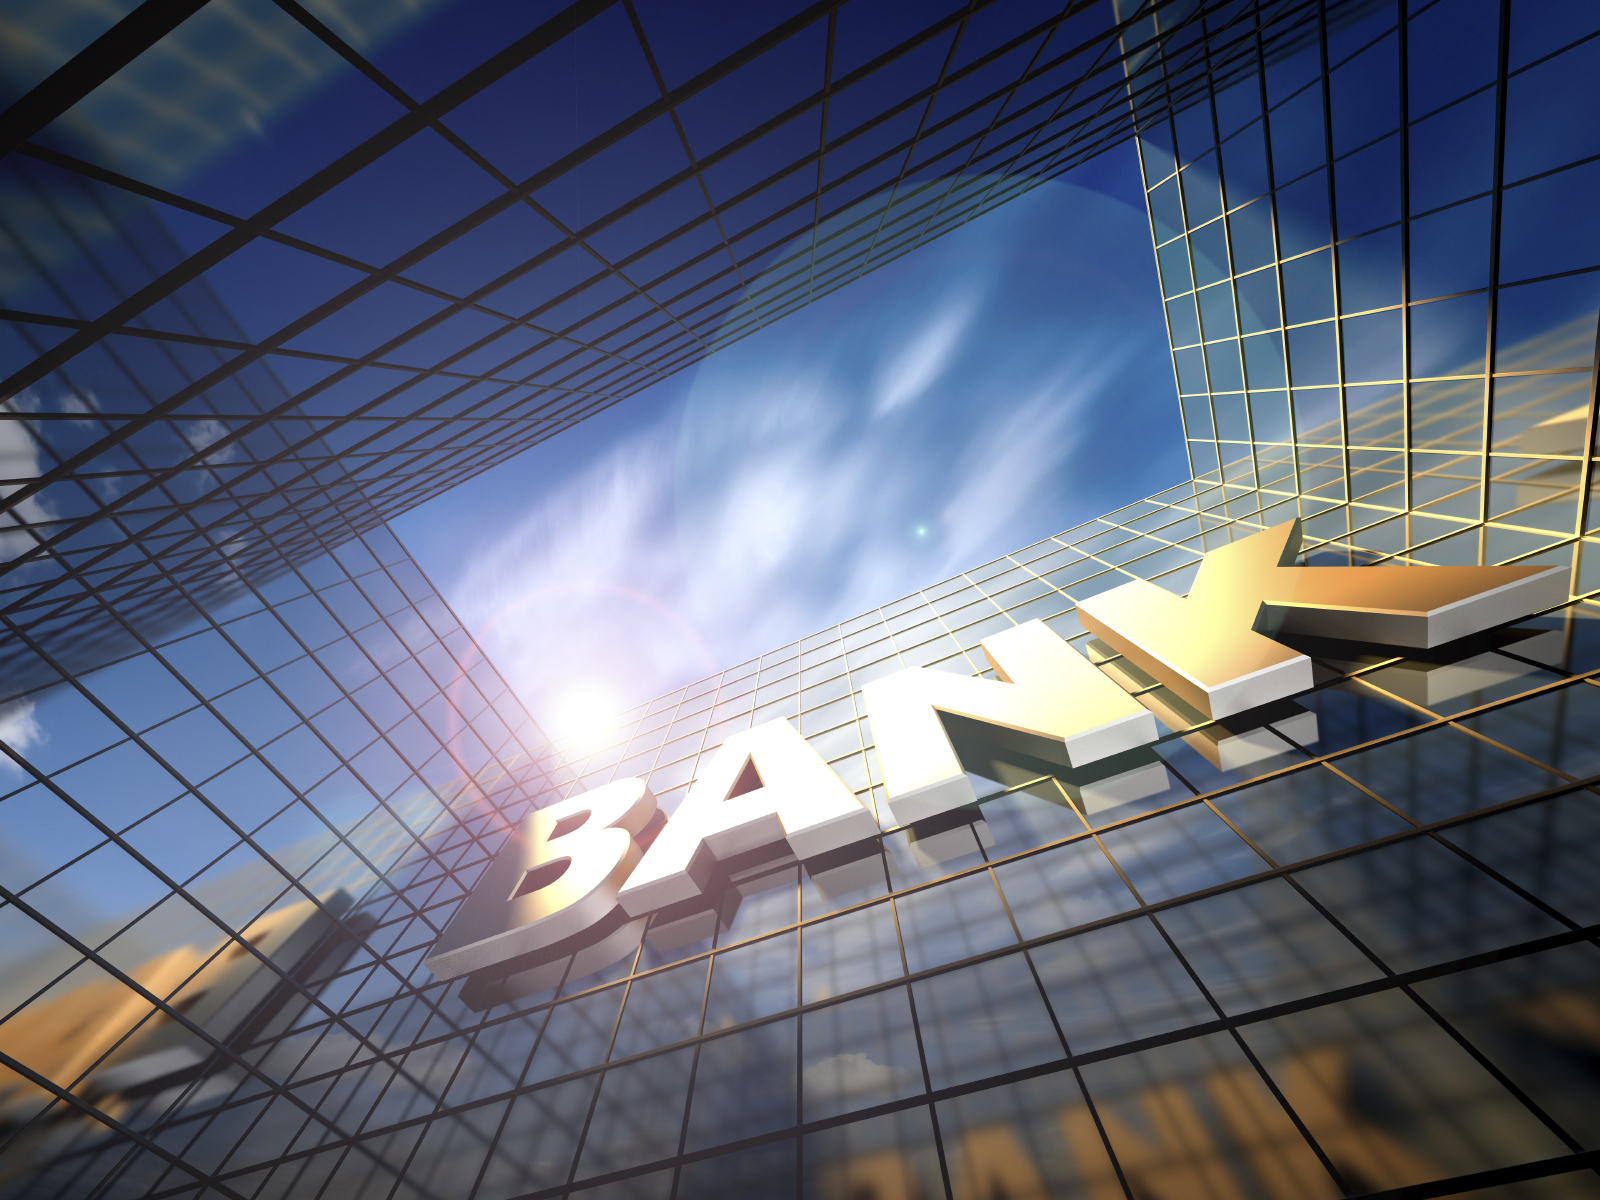 Looking skyward at a large BANK sign on the side of a glass building. (stock image)